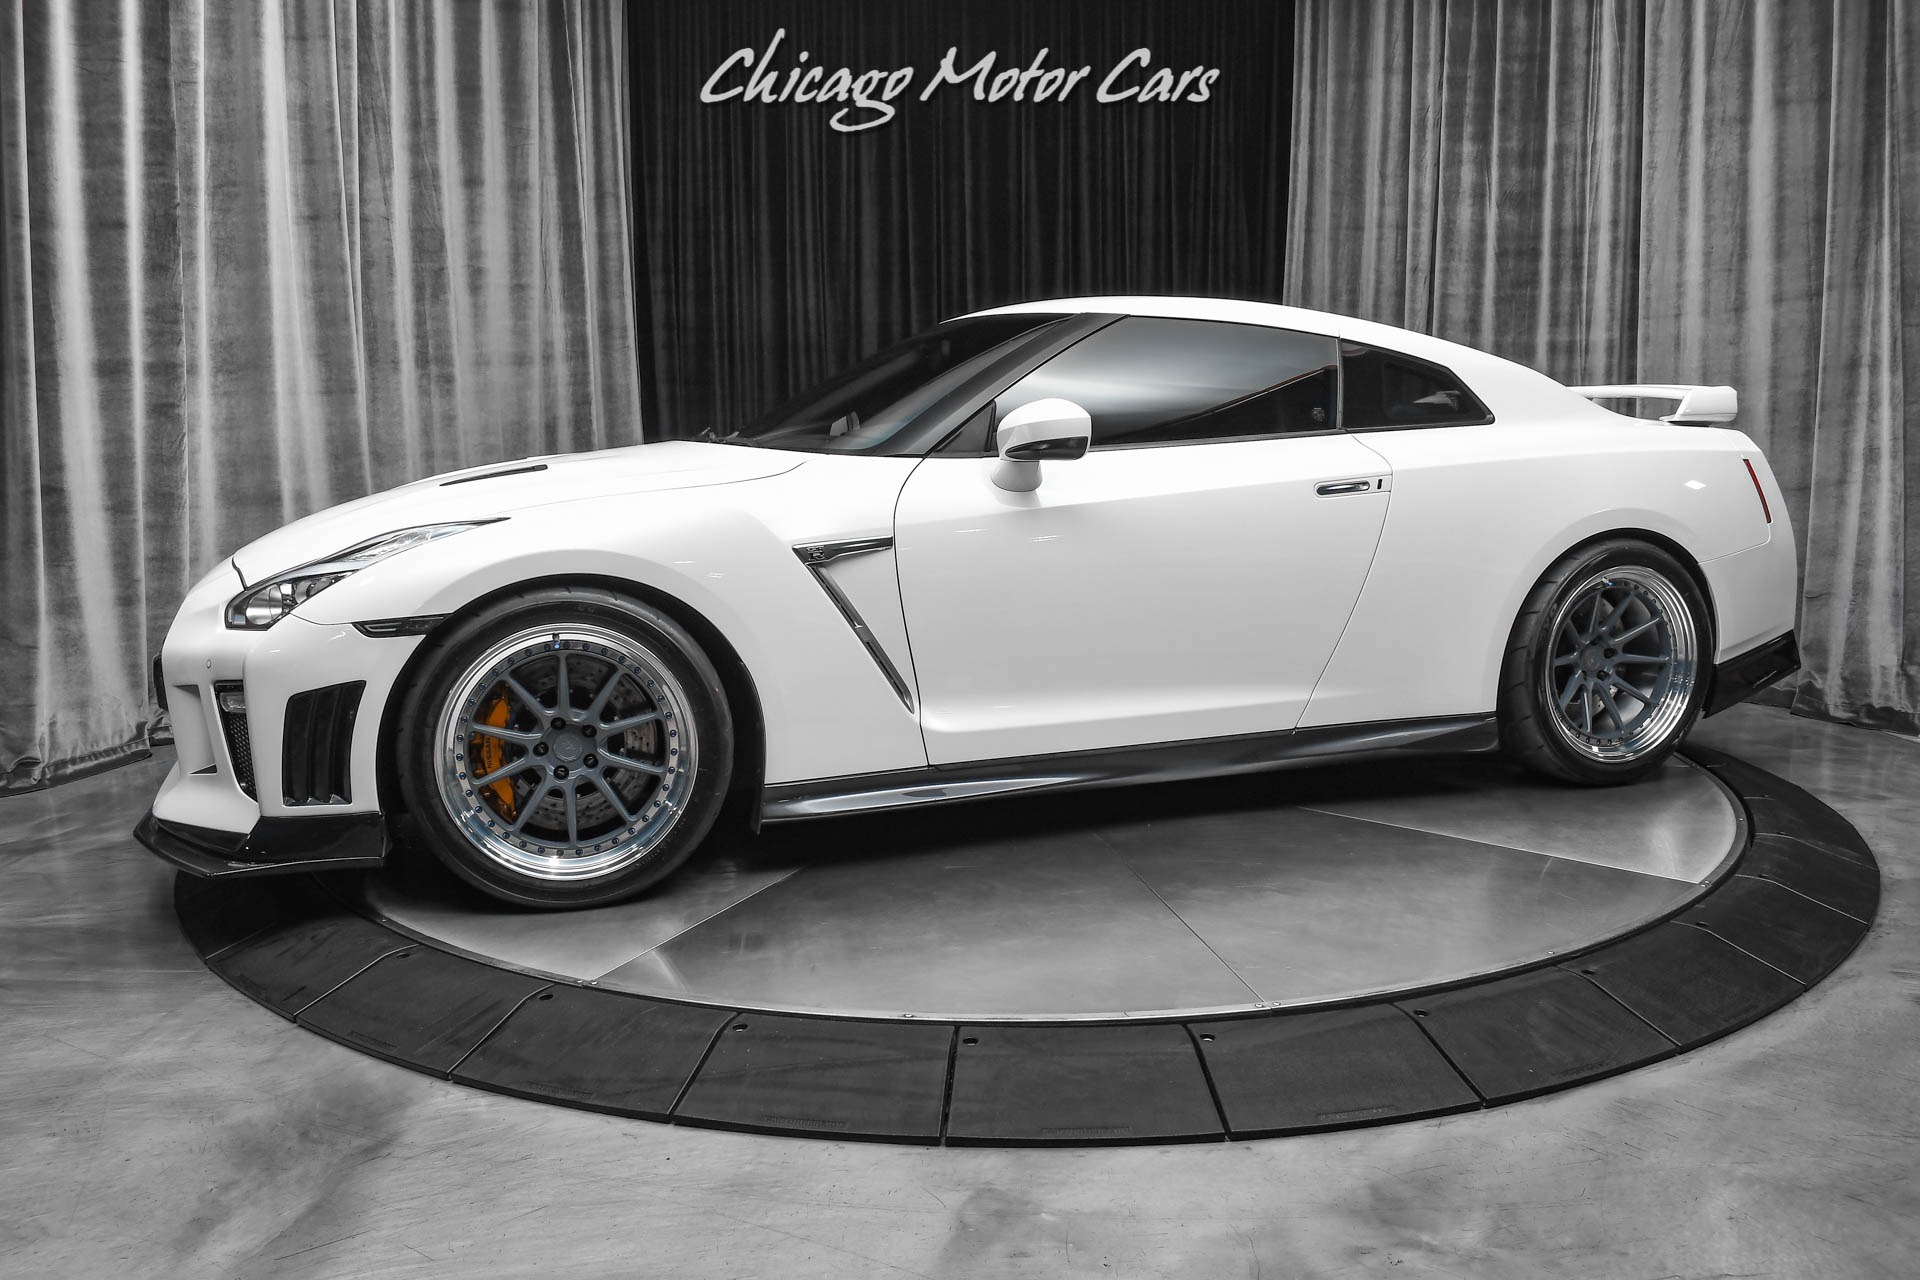 Used-2017-Nissan-GT-R-PREMIUM-1300WHP-SWITZER-PERFORMANCE-SHEP-TRANS